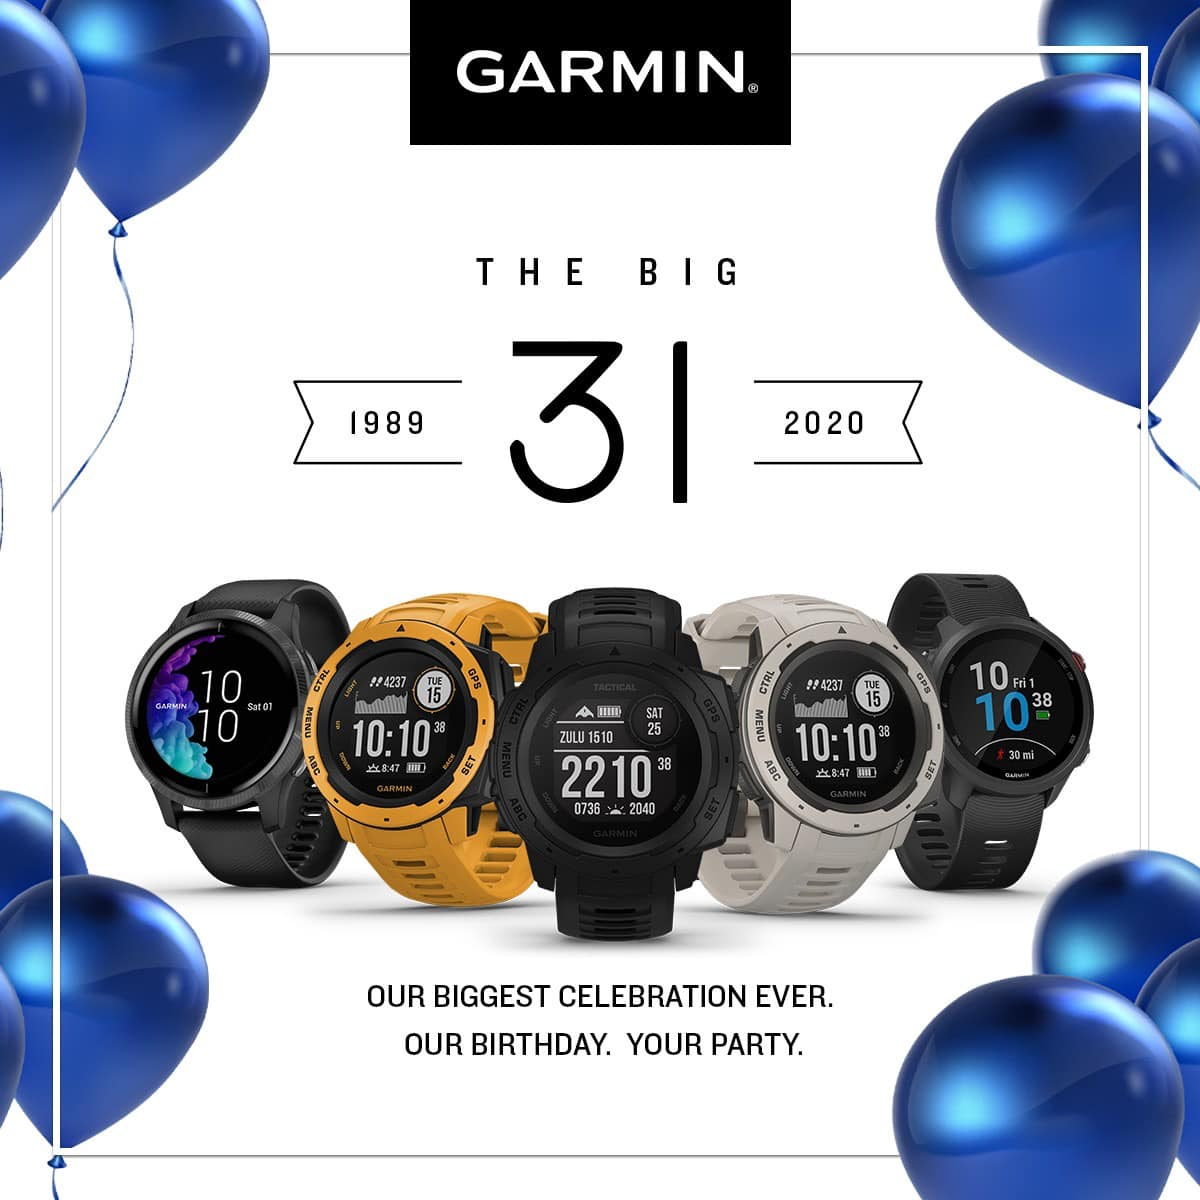 It's Garmin's 31st birthday and we're throwing OUR BIGGEST PARTY YET! 🥳 No silly hats